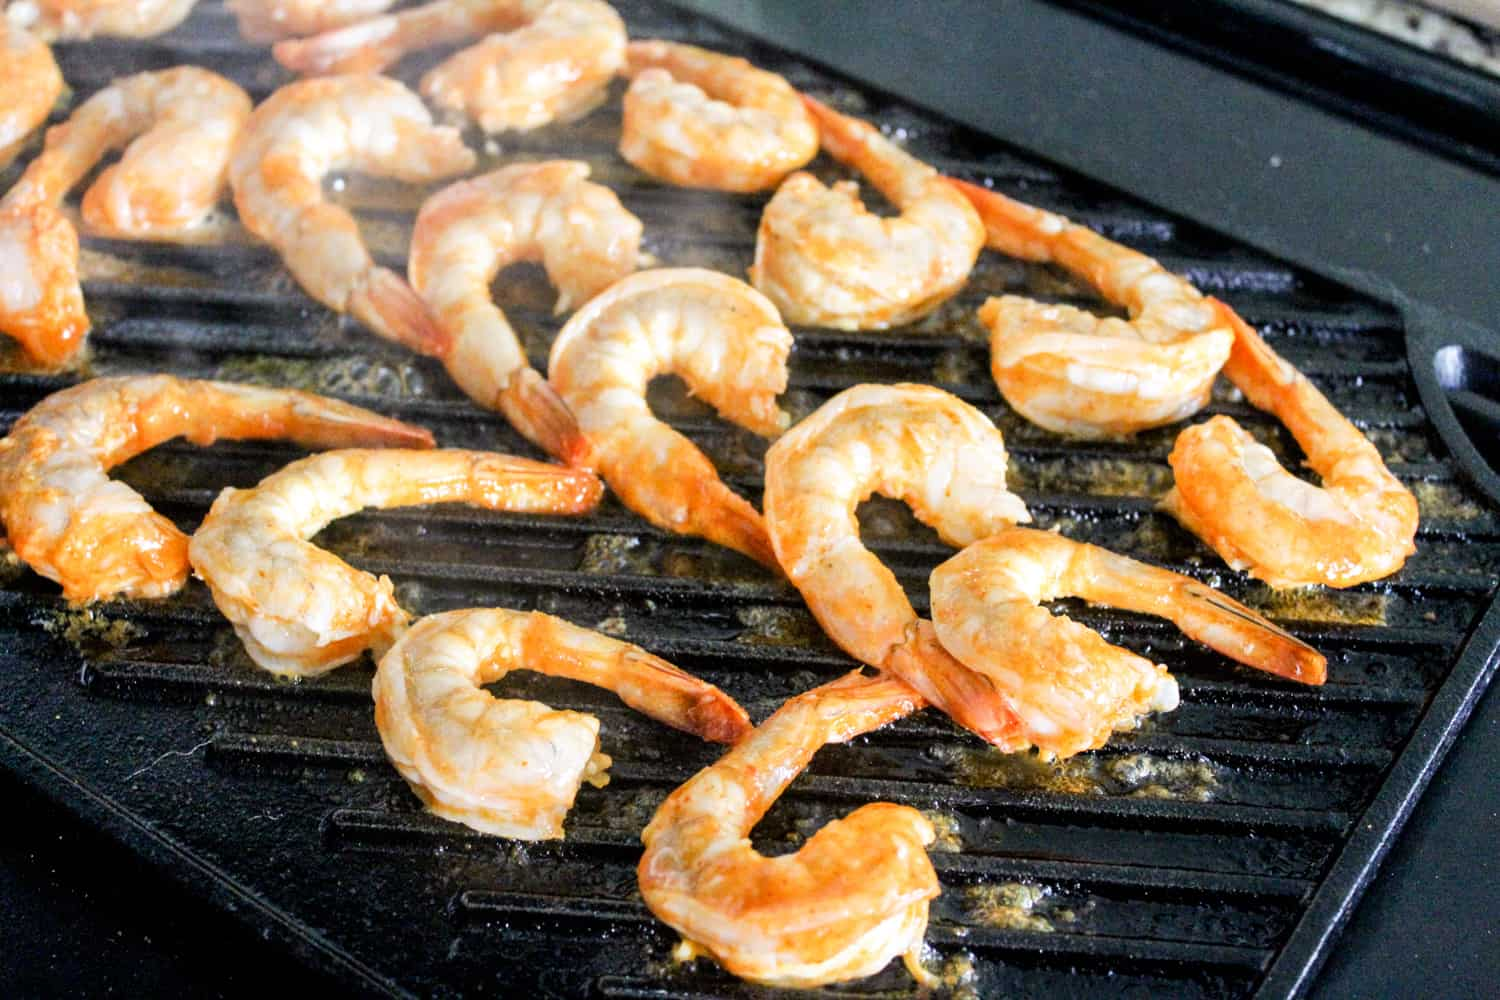 shrimp on grill pan with hot sauce